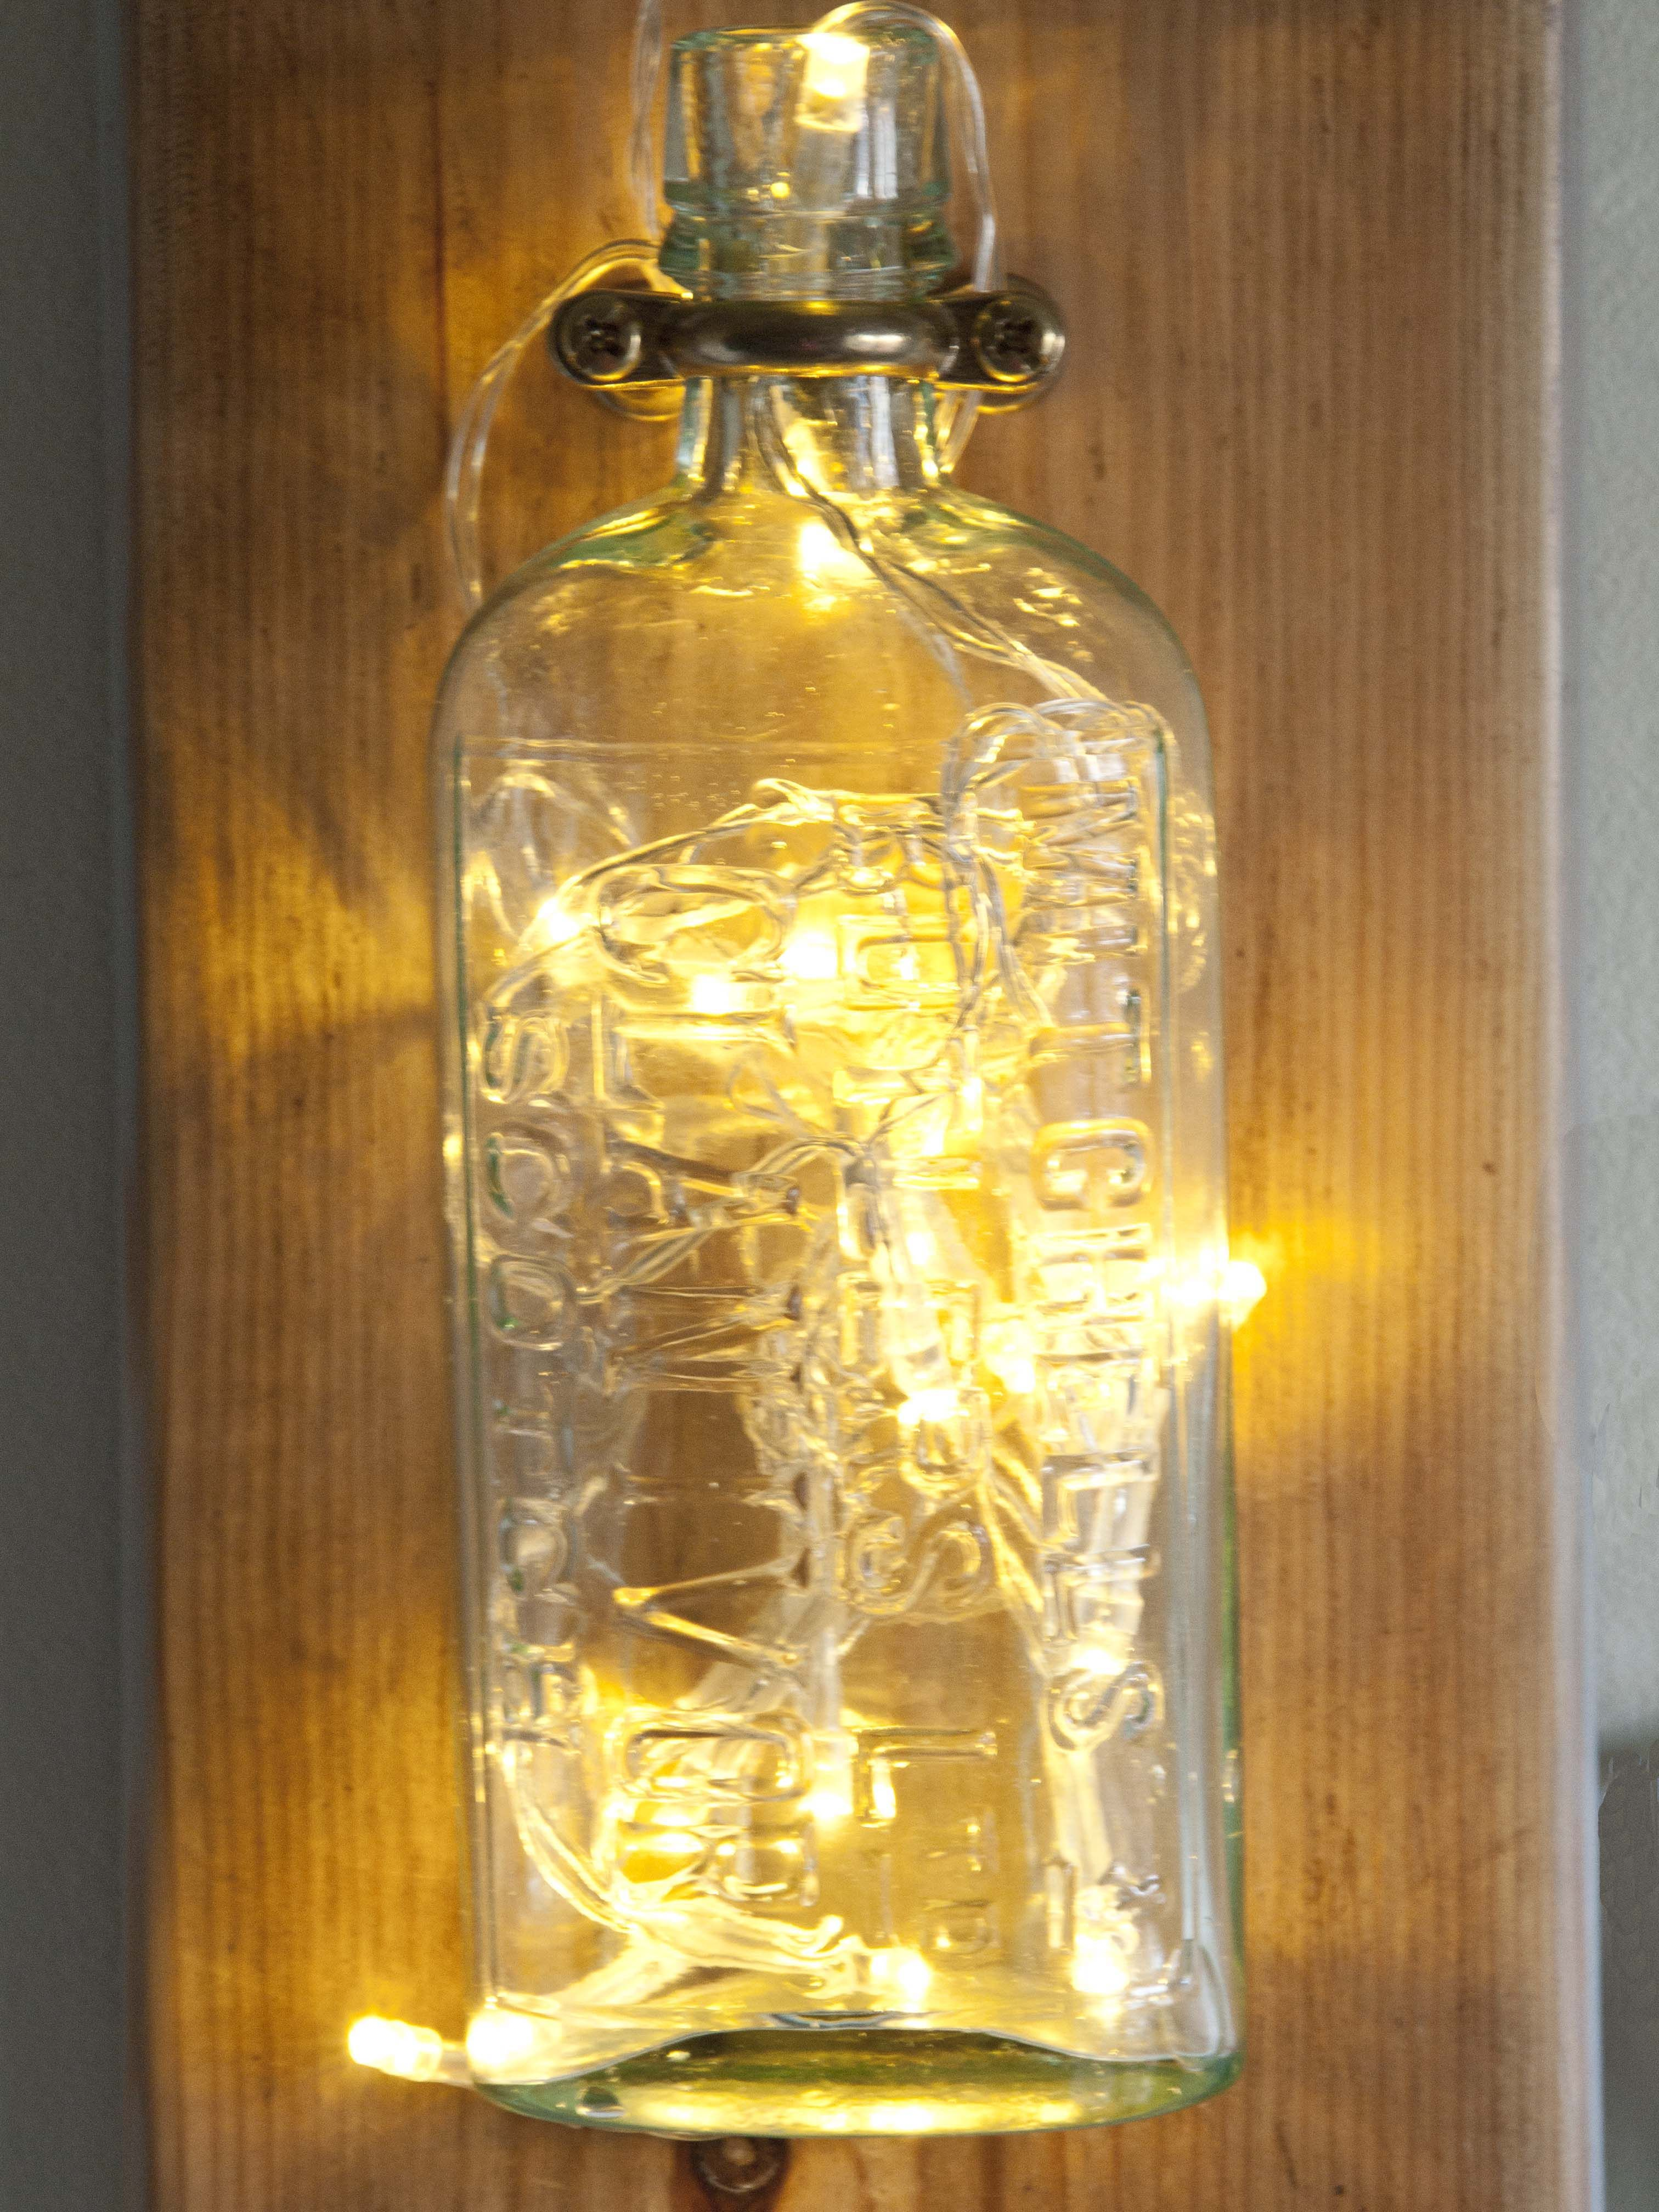 Vintage glass, whisky bottle,rustic decor, wall decor, cool lighting ...